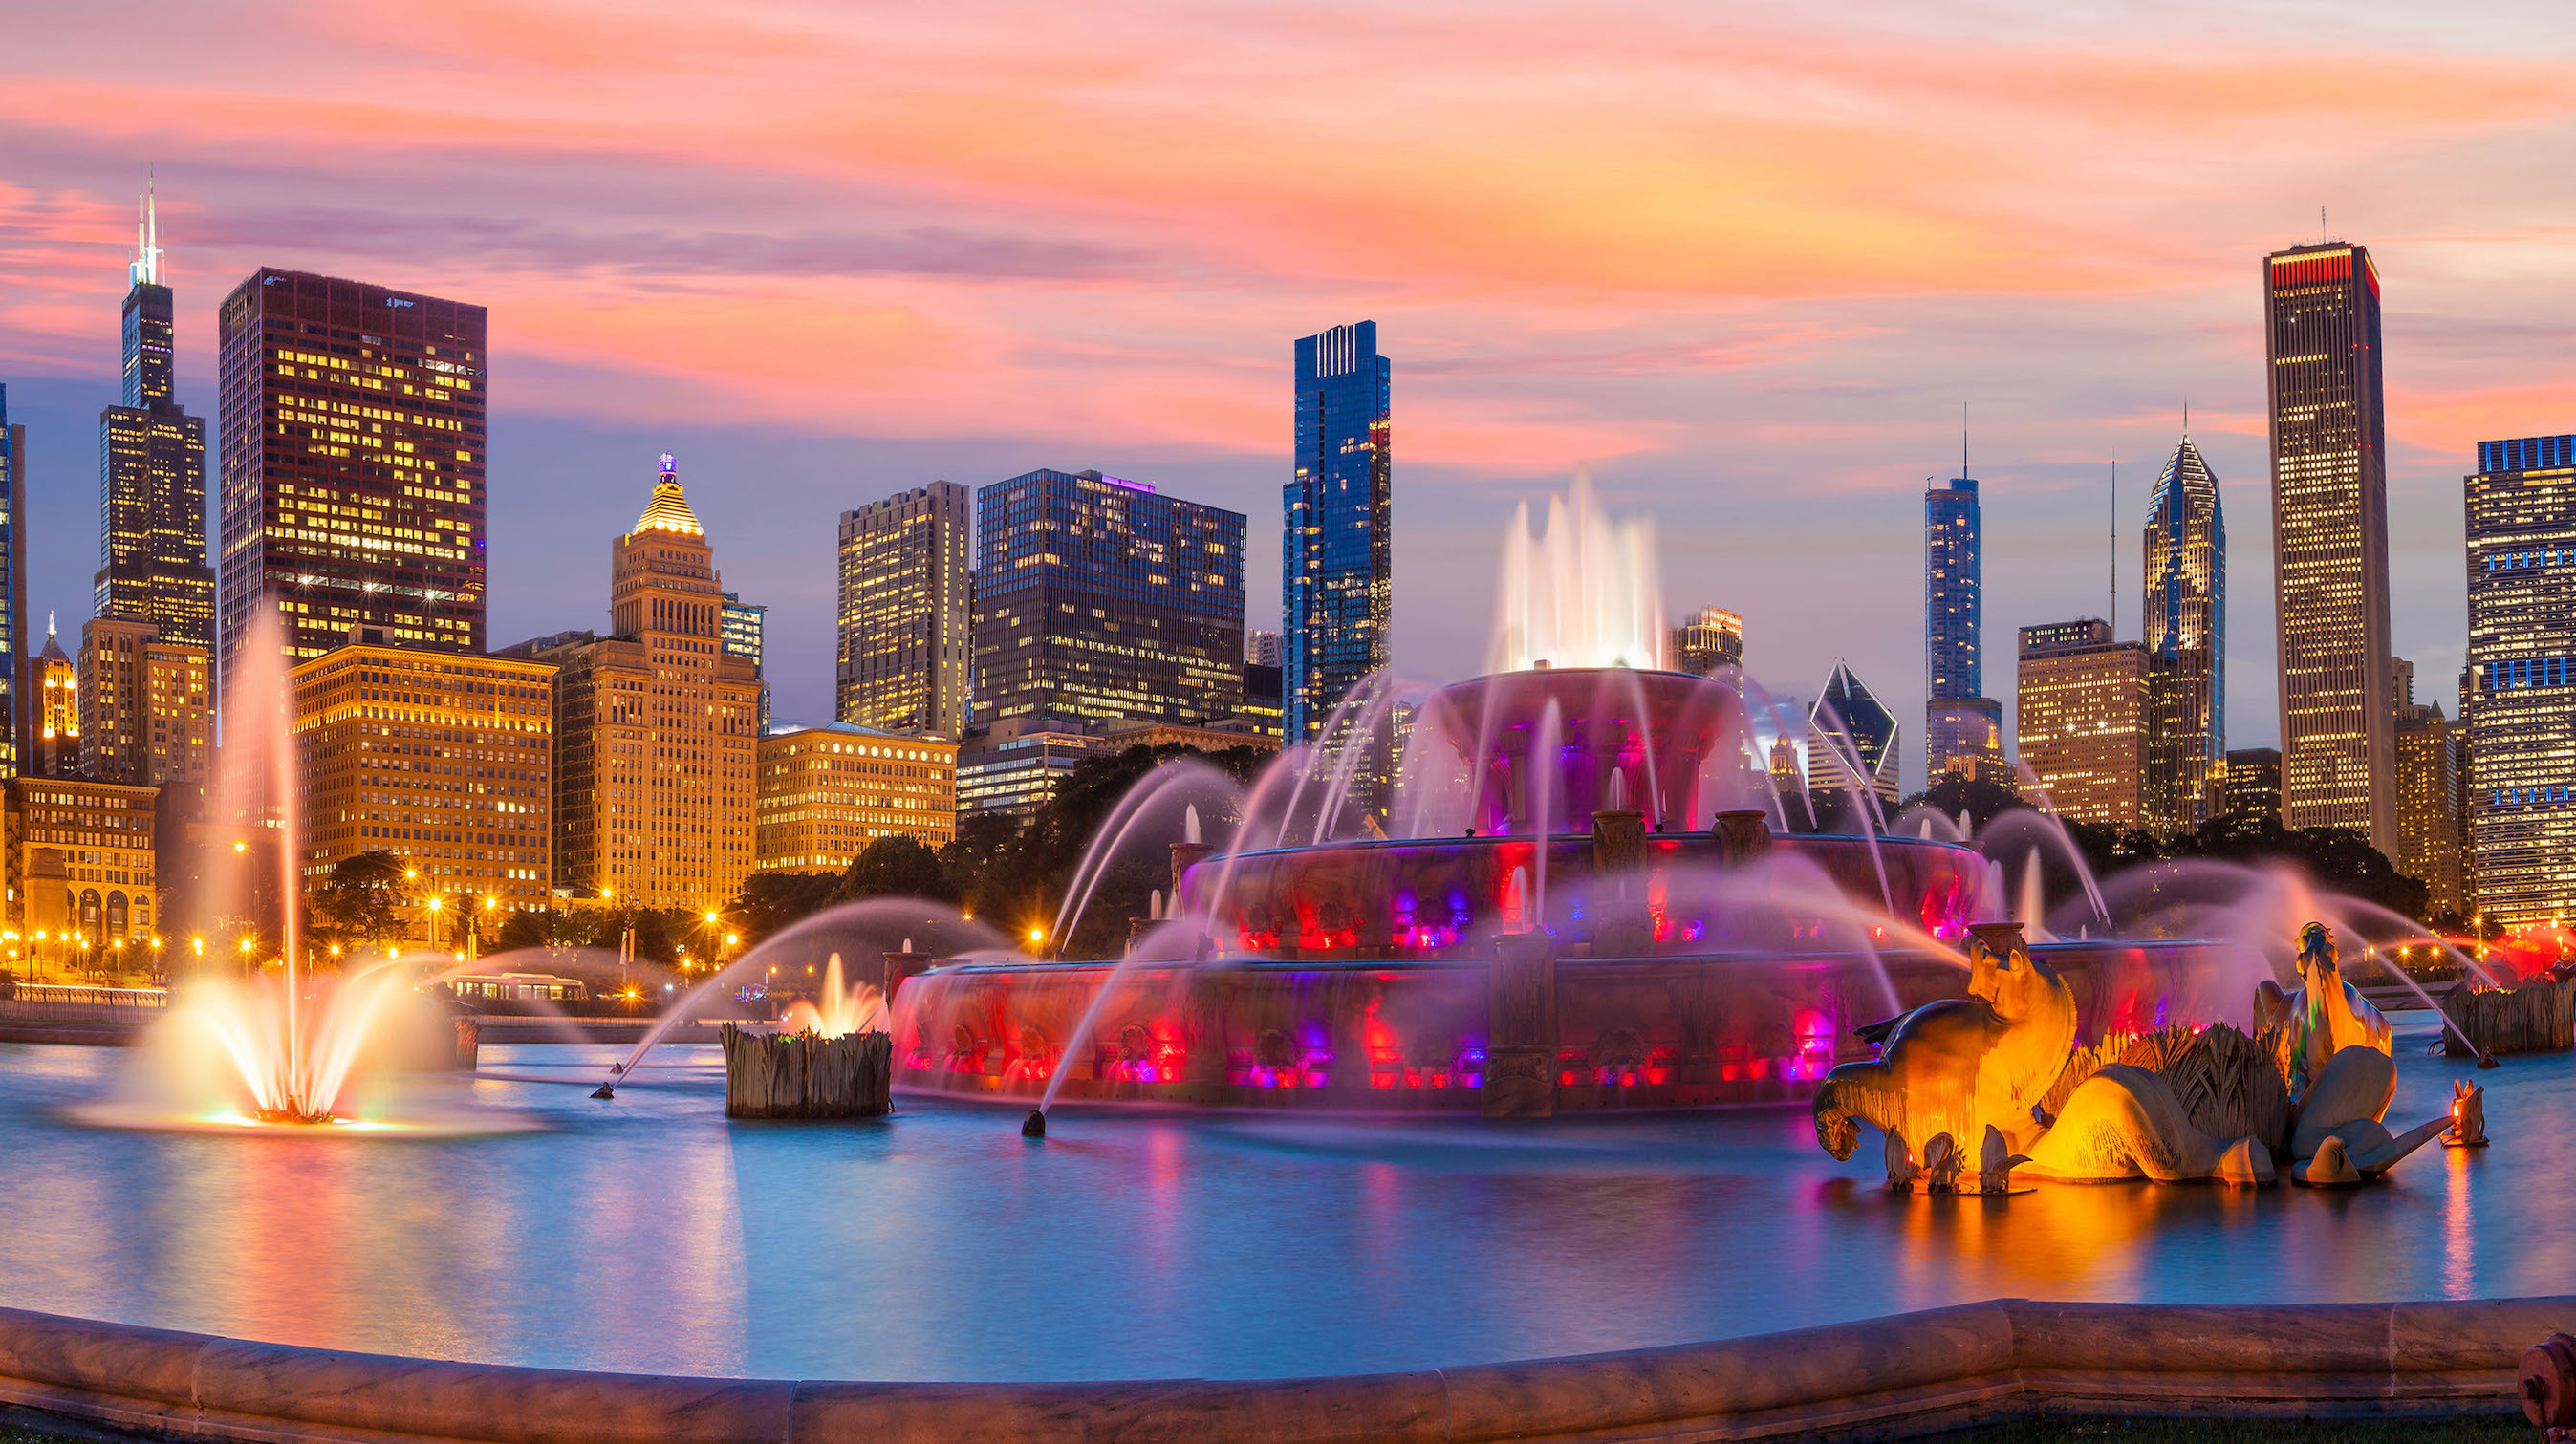 Find romantic things to do in Chicago